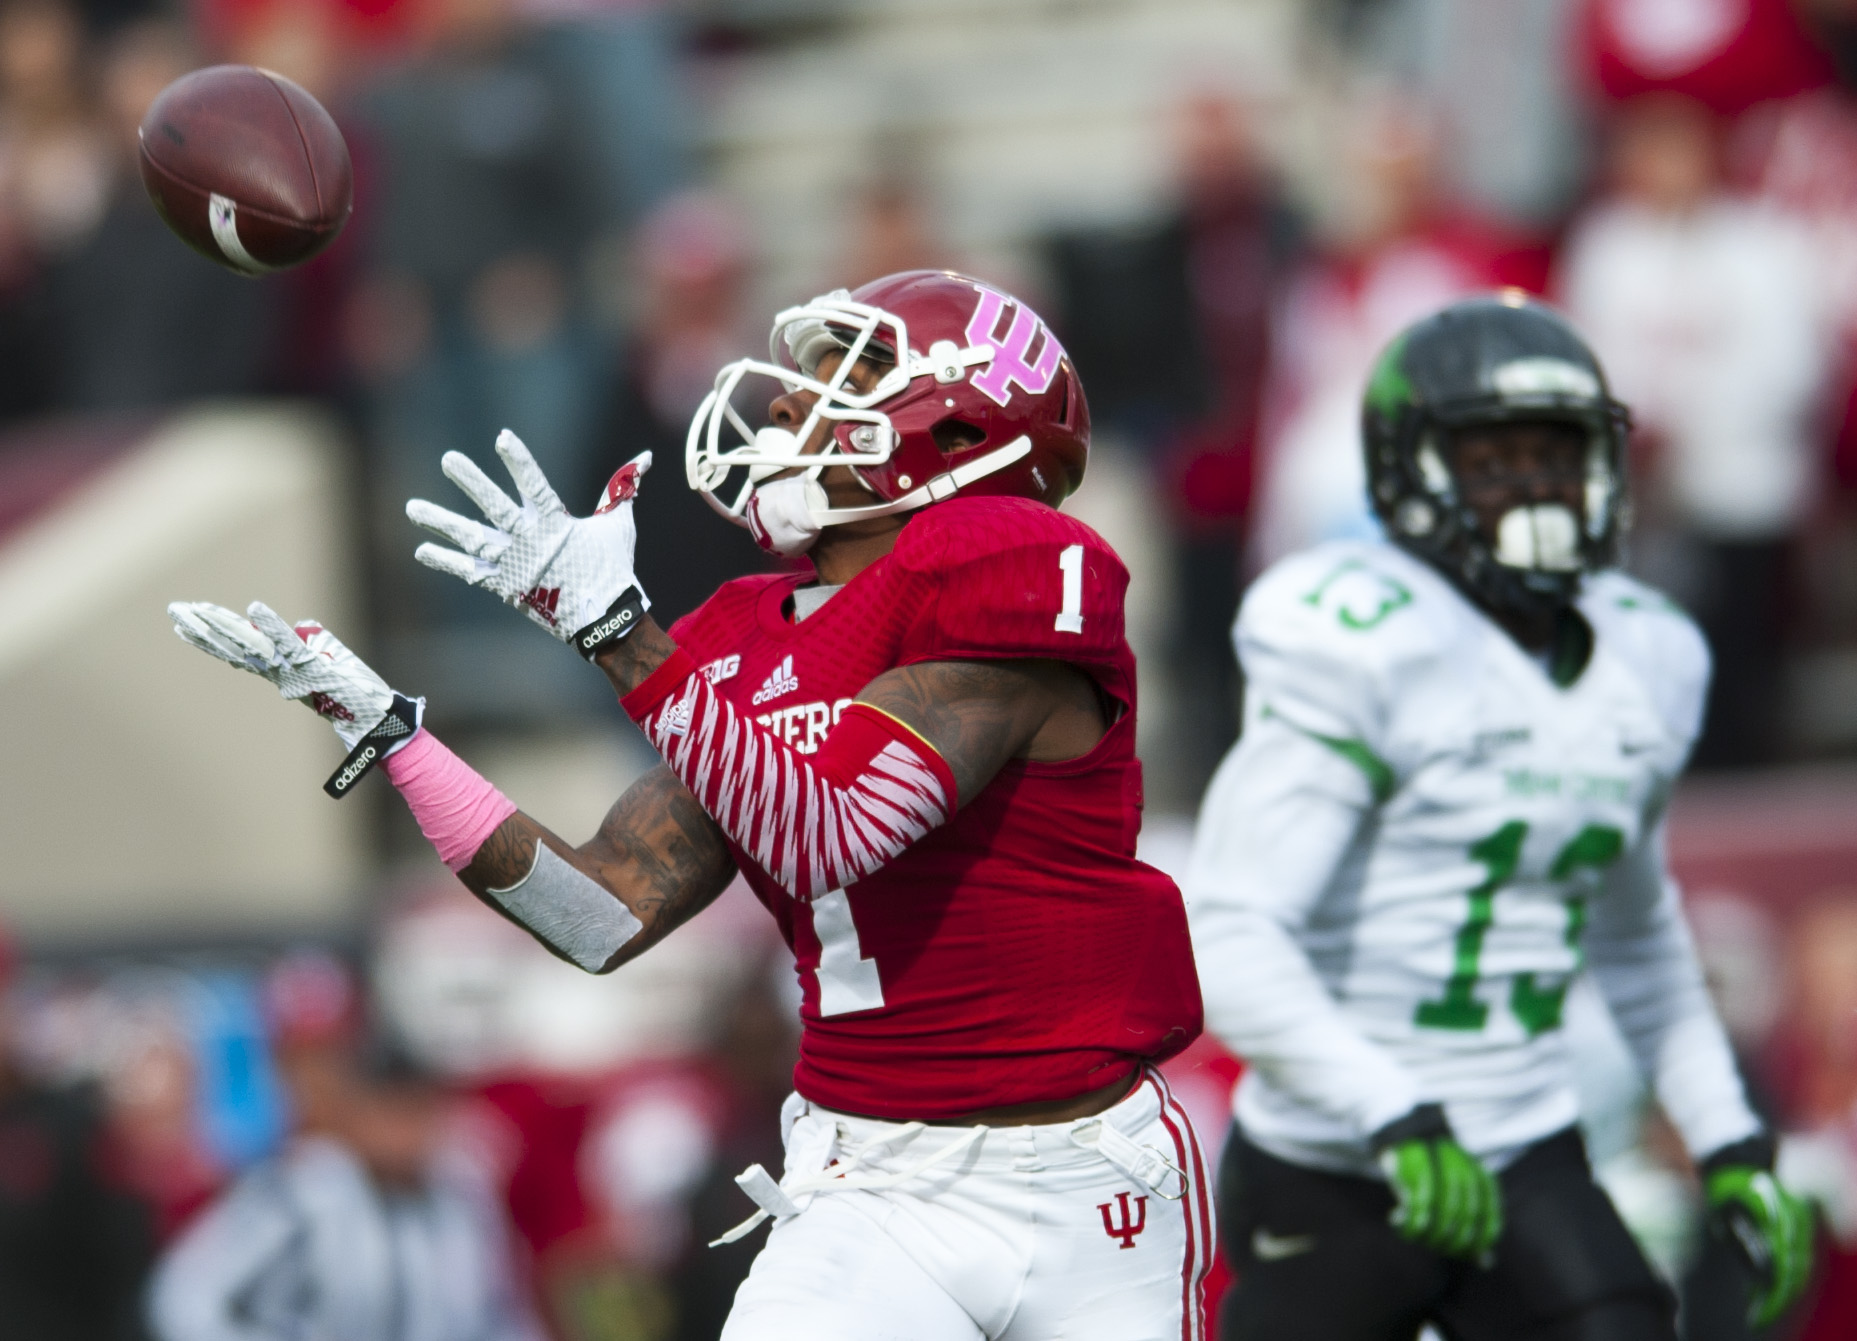 Indiana University's Shane Wynn successfully catches a pass and goes on to score a touchdown for the Hoosiers during the Indiana vs North Texas game on Saturday, October 4 in Bloomington, Indiana.